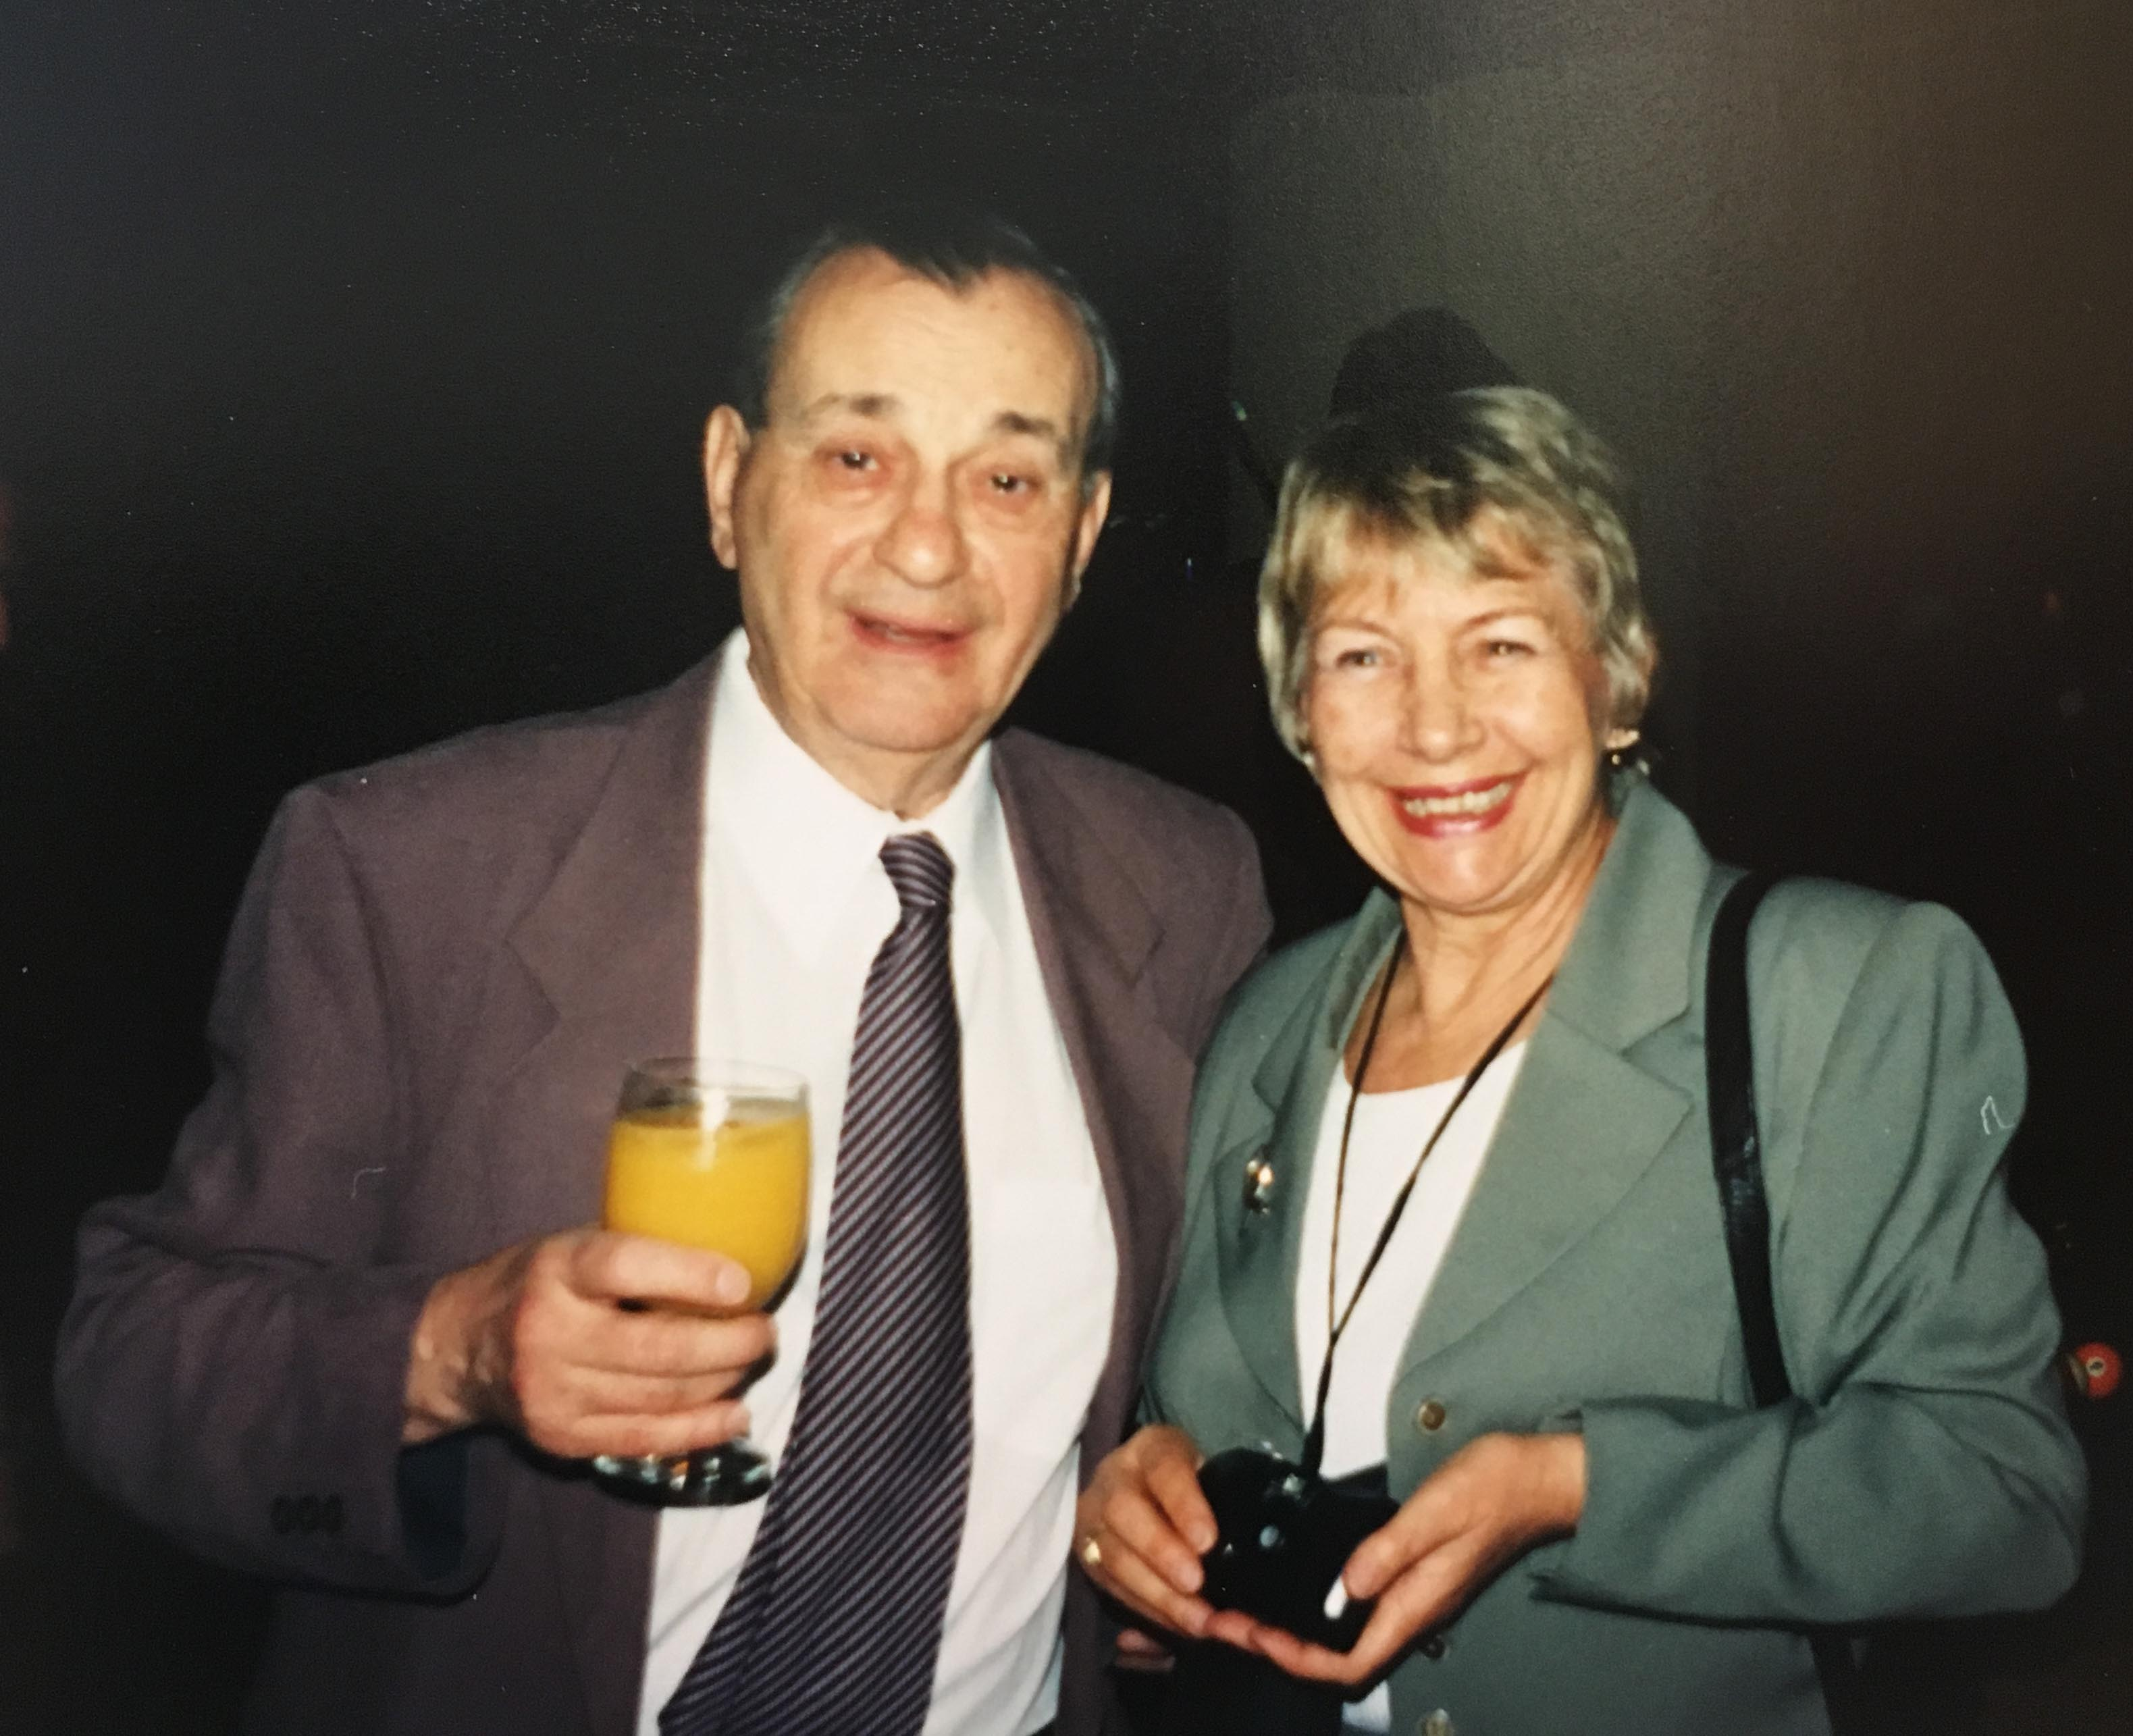 Emil Wolf and his wife, Marlies in 2001